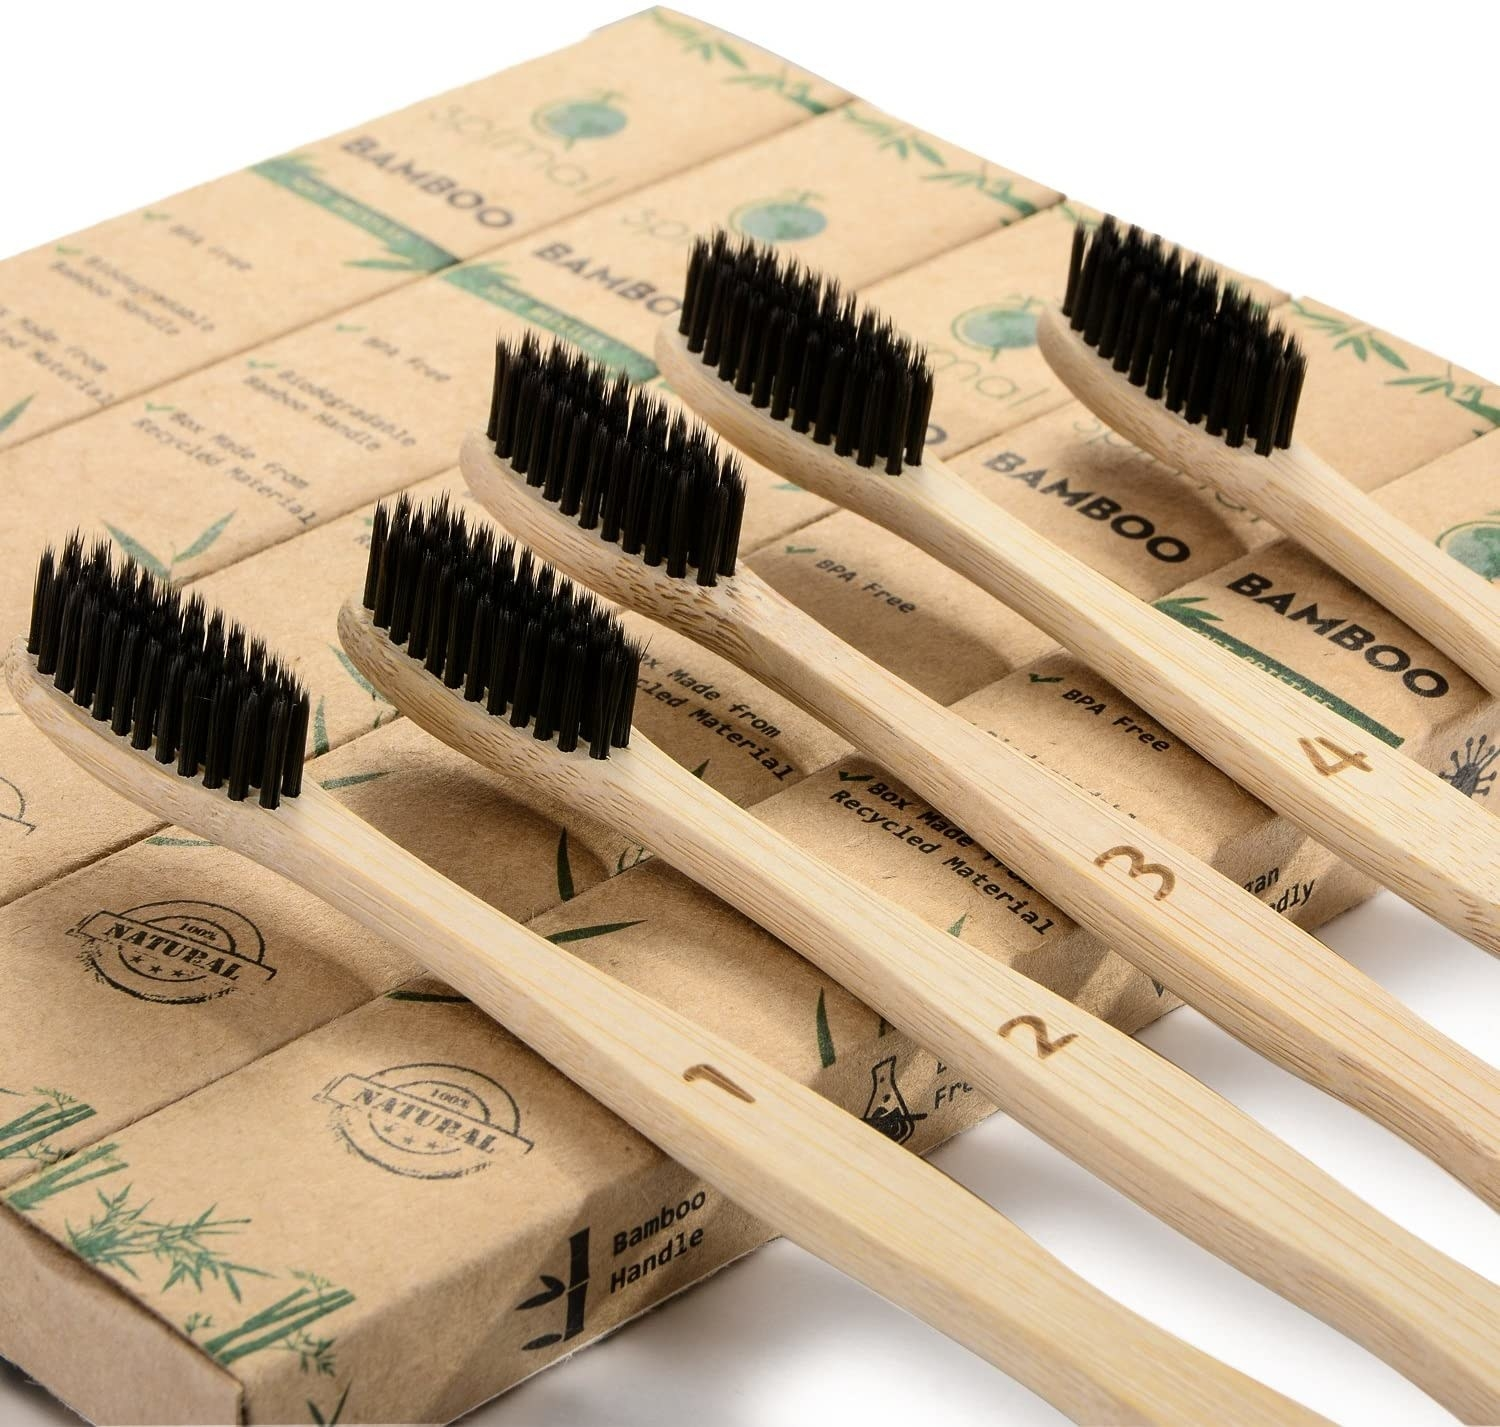 A close up of the five bamboo toothbrushes with charcoal infused bristles